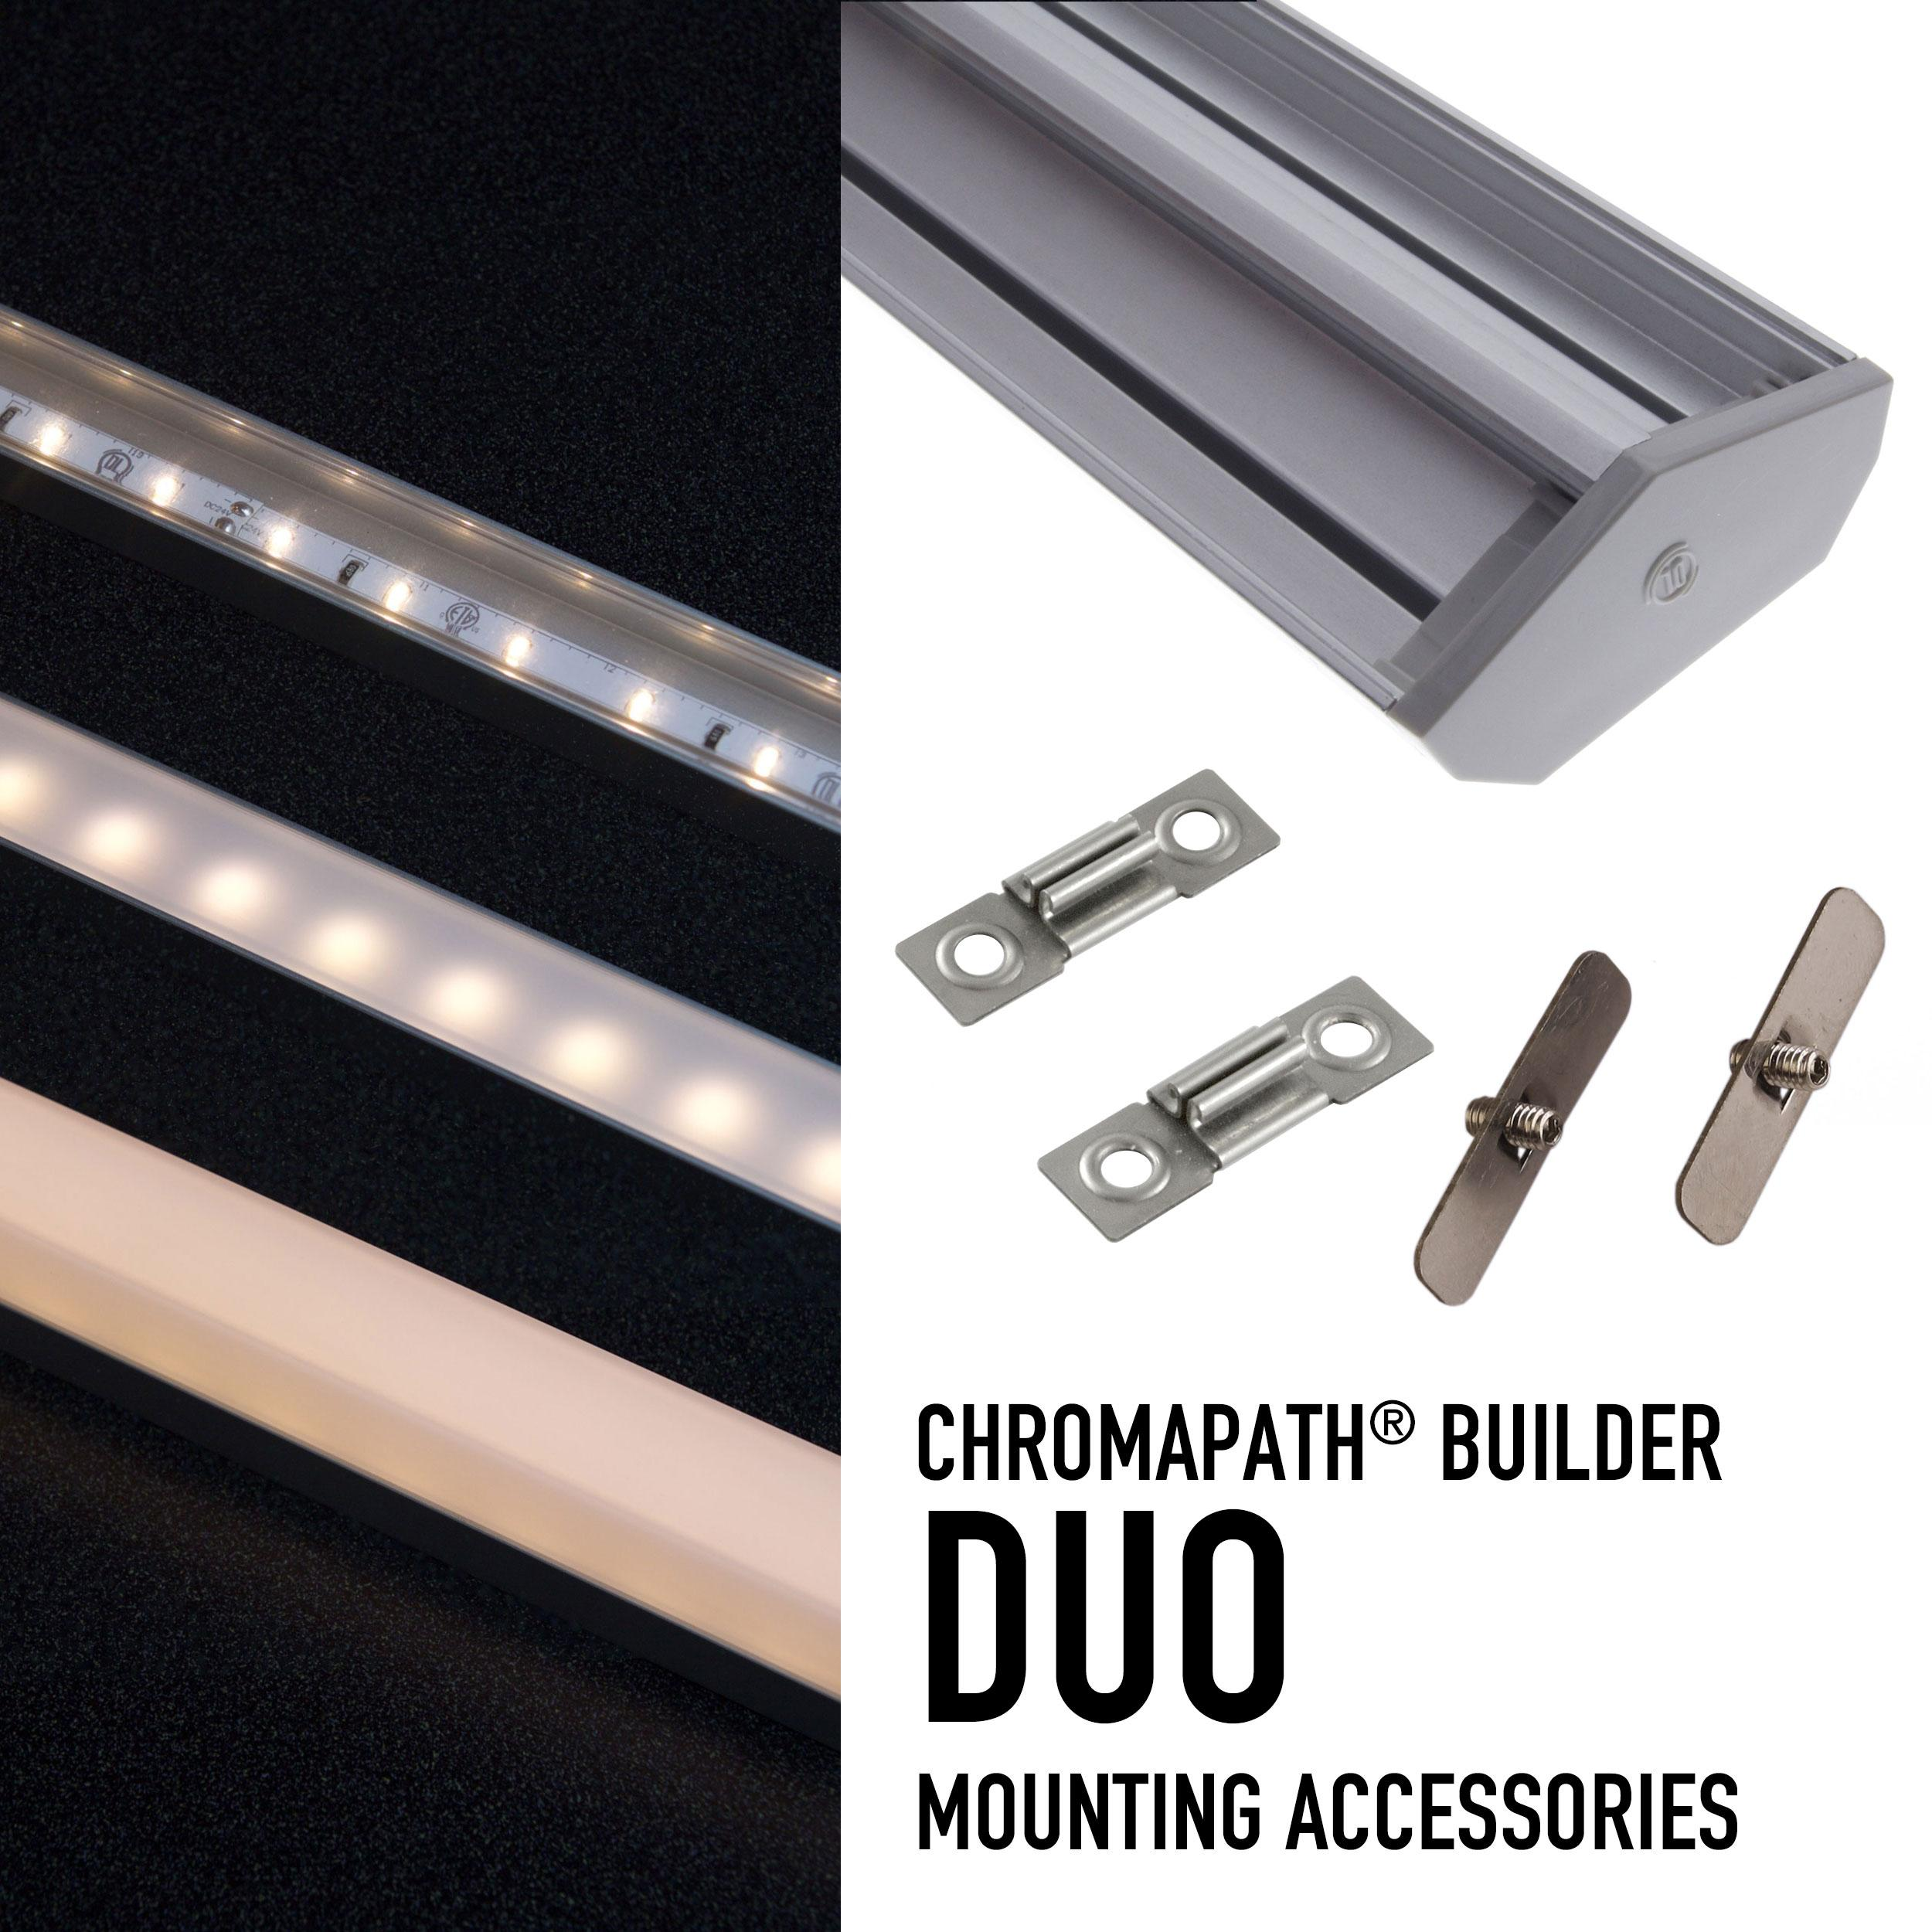 CHROMAPATH® Builder Channels & Accessories - DUO